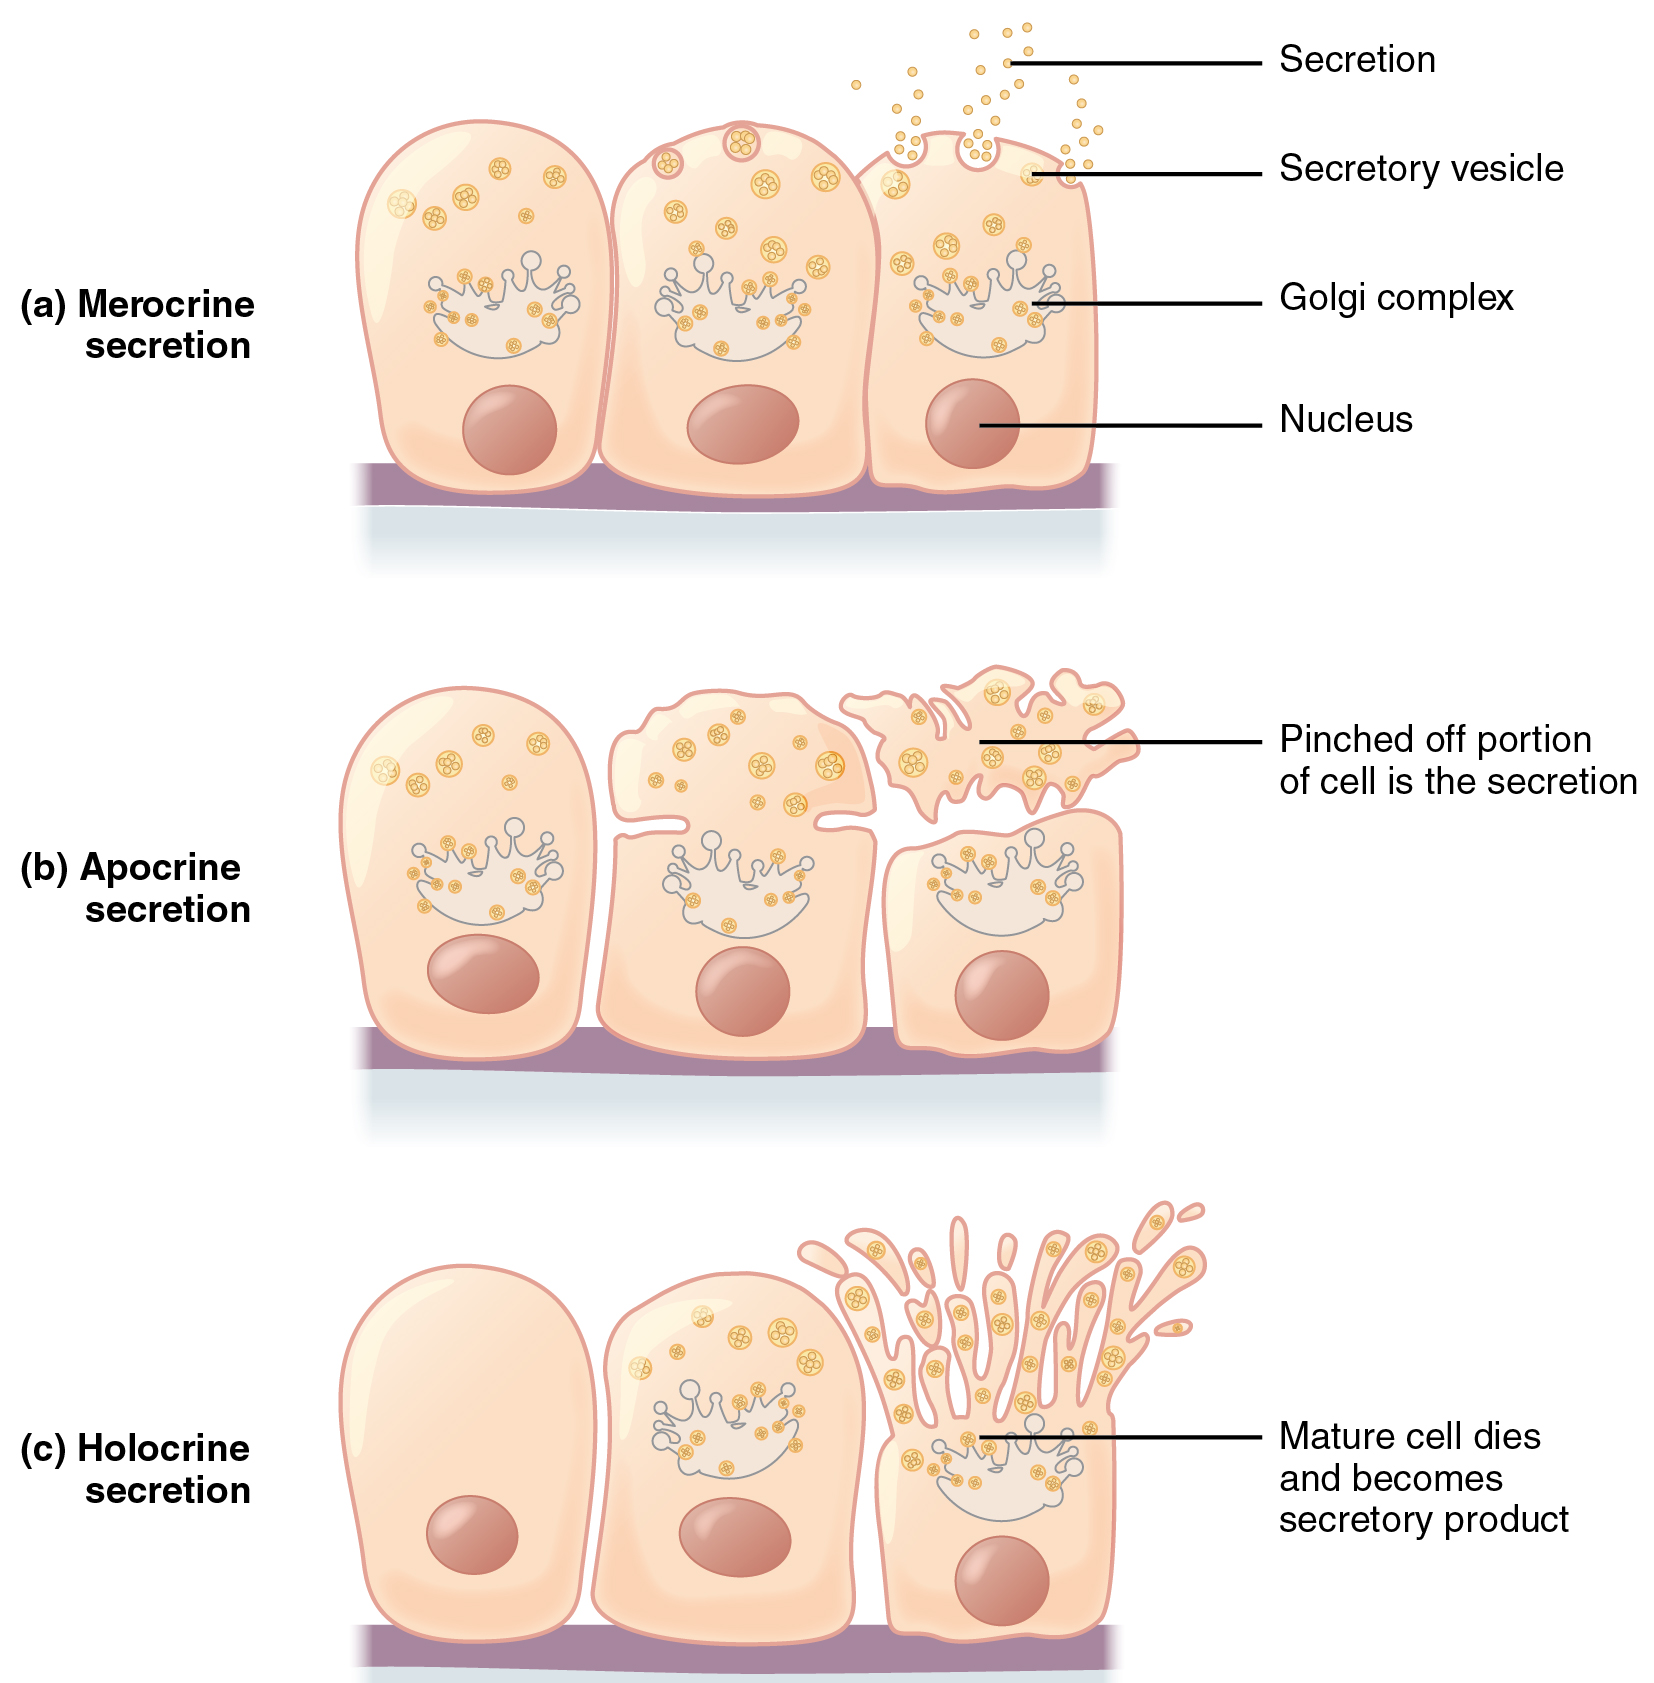 These three diagrams show the three modes of secretion. All three diagrams show three orange cells in a line with attached to a basement membrane. Each cell has a large nucleus in its lower half. The upper half of each cell contains a Golgi apparatus, which appears like an upside down jellyfish. Yellow secretory vesicles are budding from the top end of the Golgi apparatus. Each vesicle contains several orange circles, which are the secreted substance. In merocrine secretion, the secretory vesicles travel to the top edge of the cells and release the secretion from the cell by melding with the cell membrane. In apocrine secretion, the top third of the cell, which contains the secretory vesicles, pinches in at the sides and then completely disconnects above the Golgi complex. The pinched off portion of the cell is the secretion, as it contains the majority of the secretory vesicles. In holocrine secretion, the upper third of the cell, just above the Golgi complex, forms many finger like projections. Each projection contains several vesicles. The tips of the projections that contain secretory vesicles bud off from the cell. In this method of secretion, the mature cell eventually dies and becomes the secretory product.